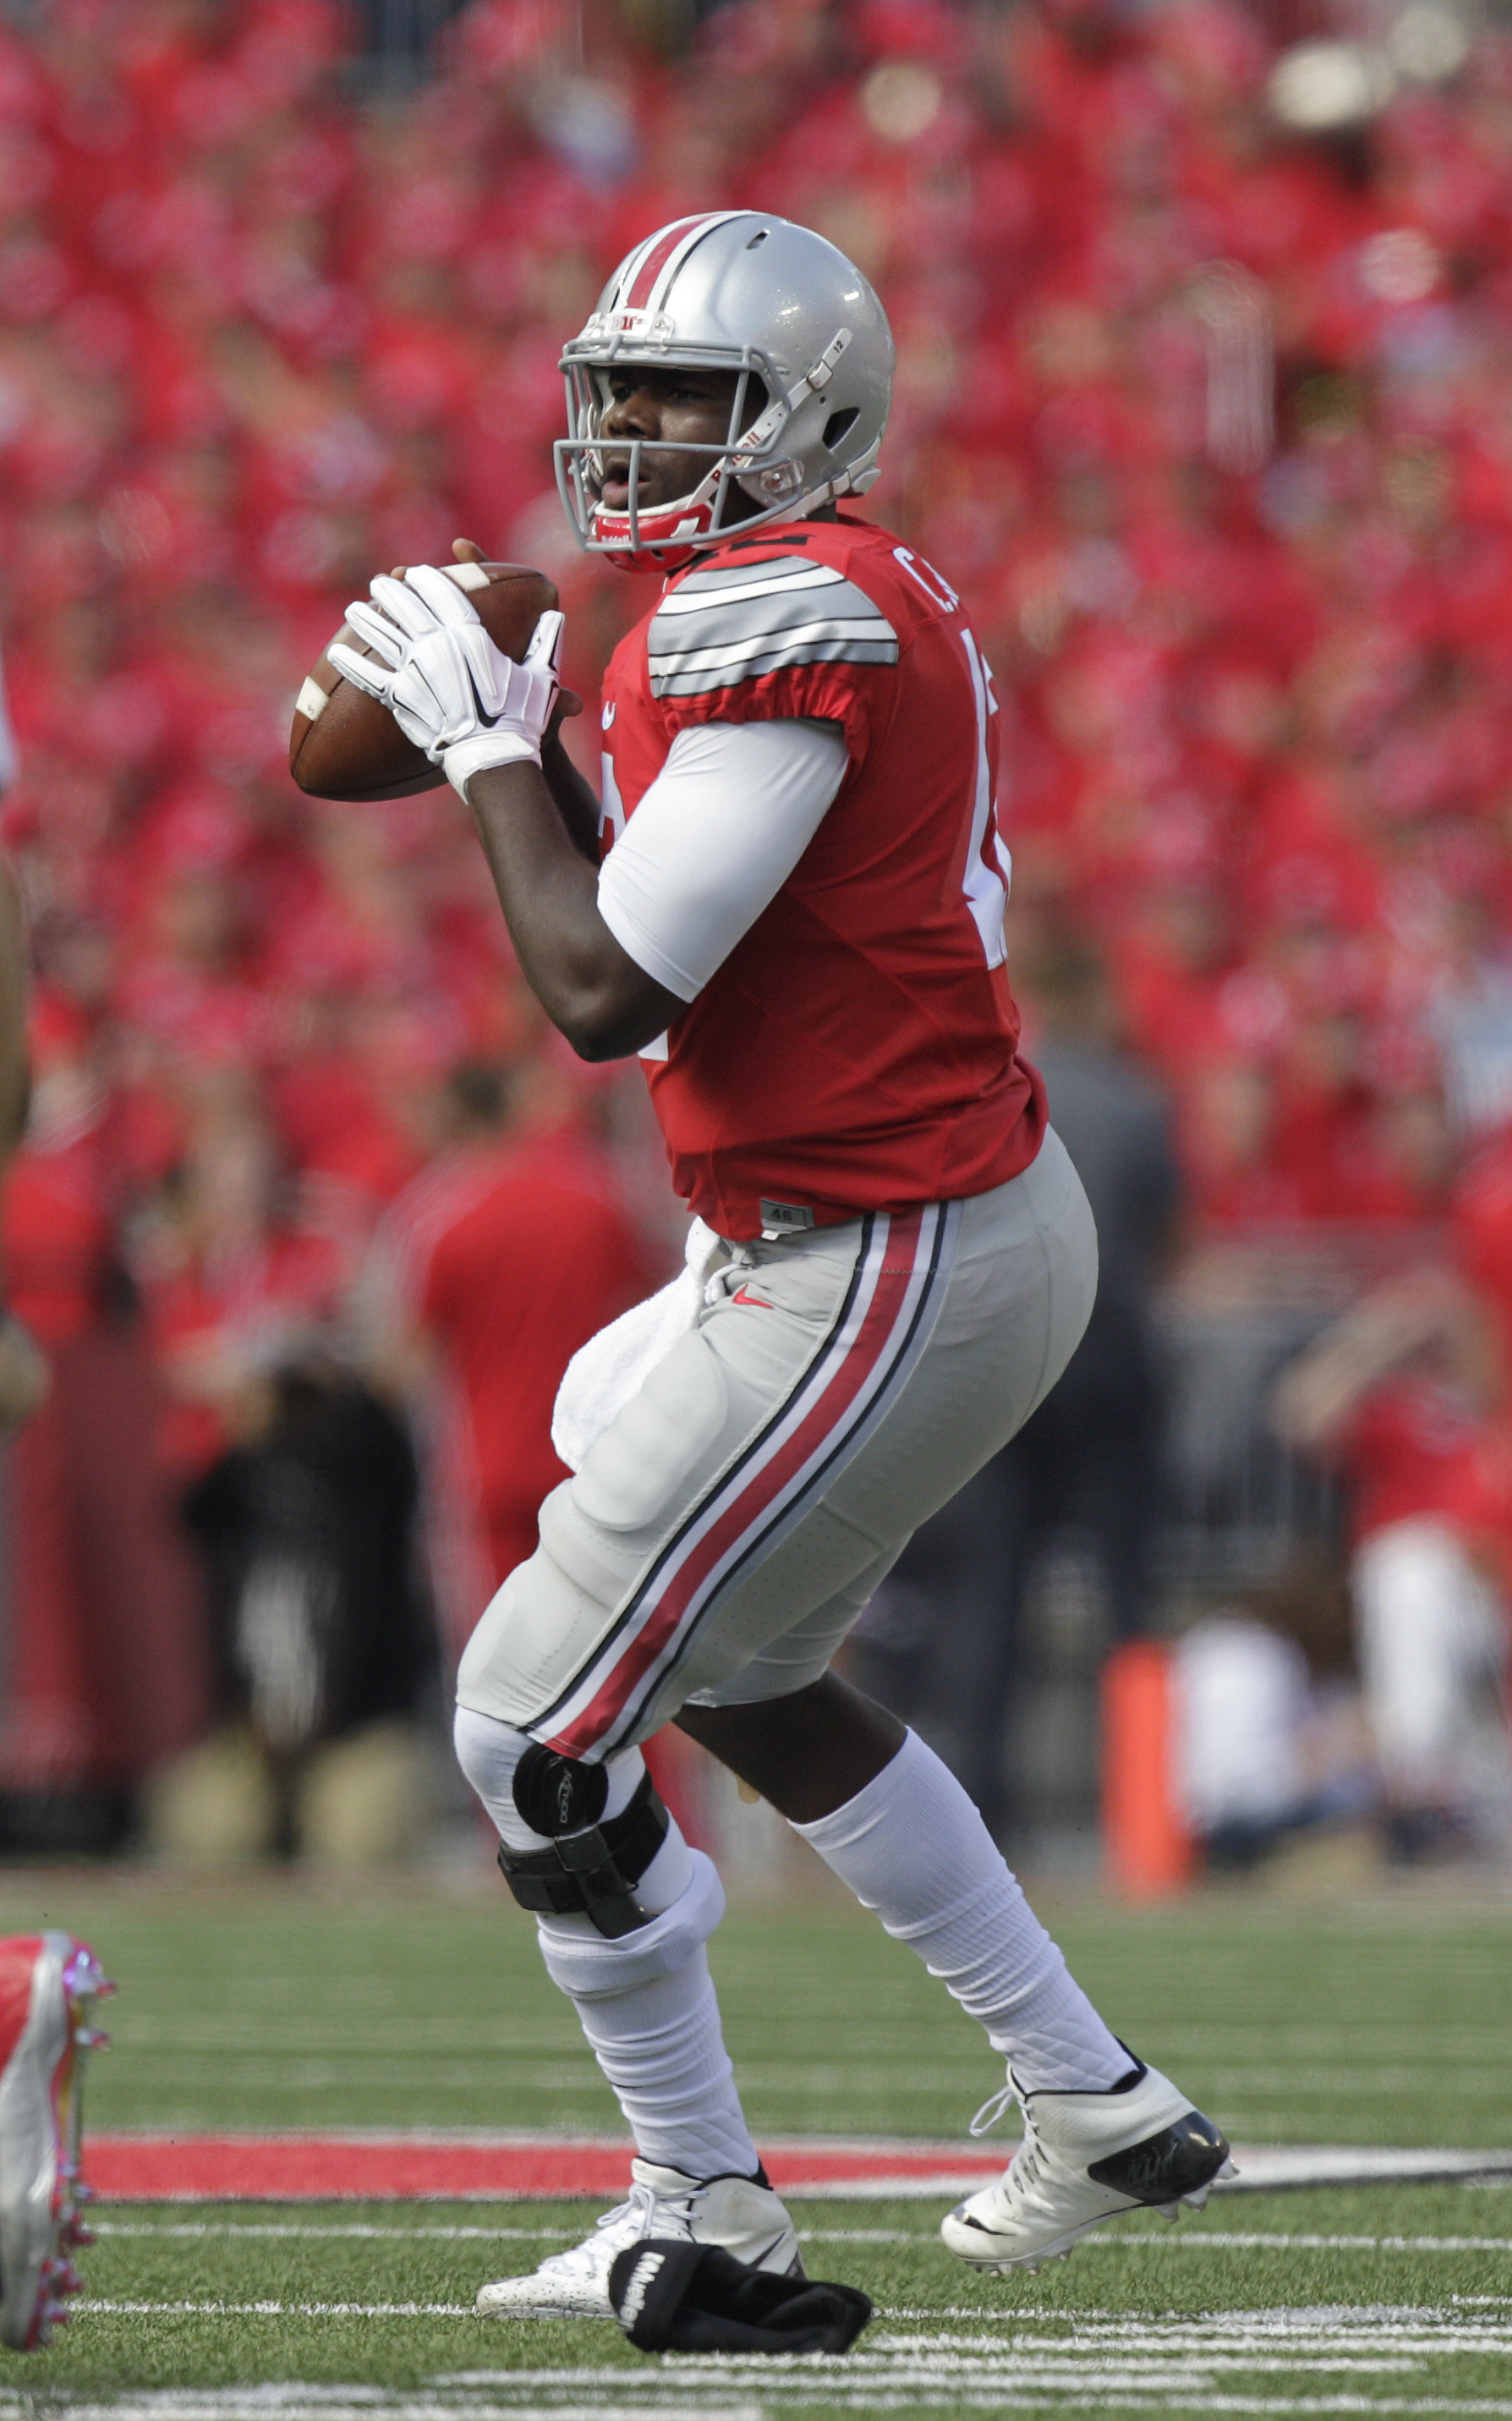 Ohio State quarterback Cardale Jones drops back to pass against Hawaii during the second quarter of an NCAA college football game Saturday, Sept. 12, 2015, in Columbus, Ohio. (AP Photo/Jay LaPrete)